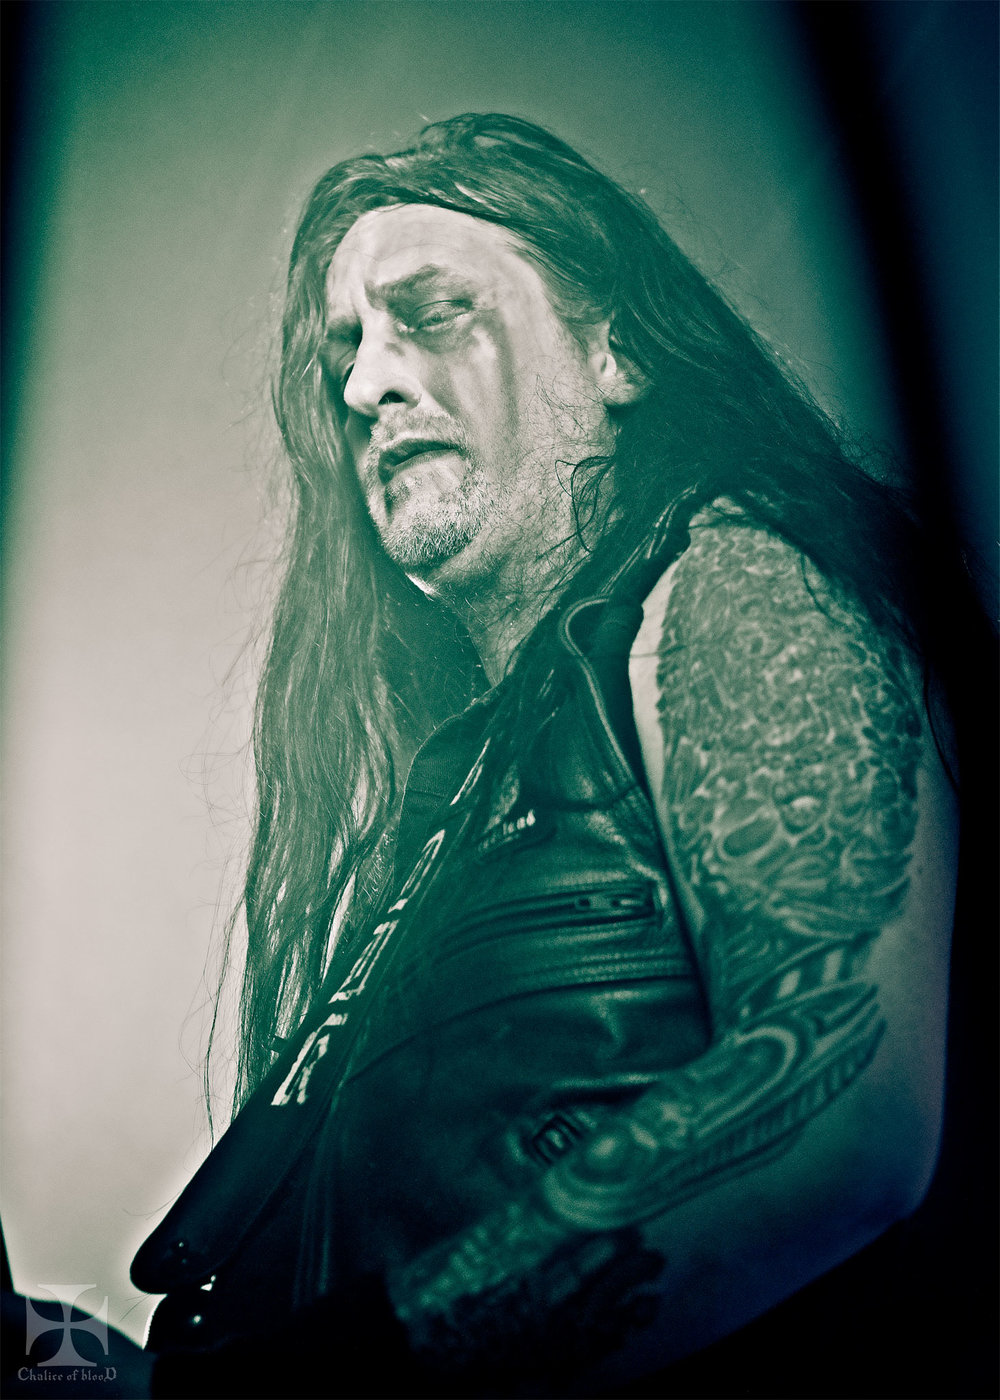 Marduk---210-watermarked.jpg